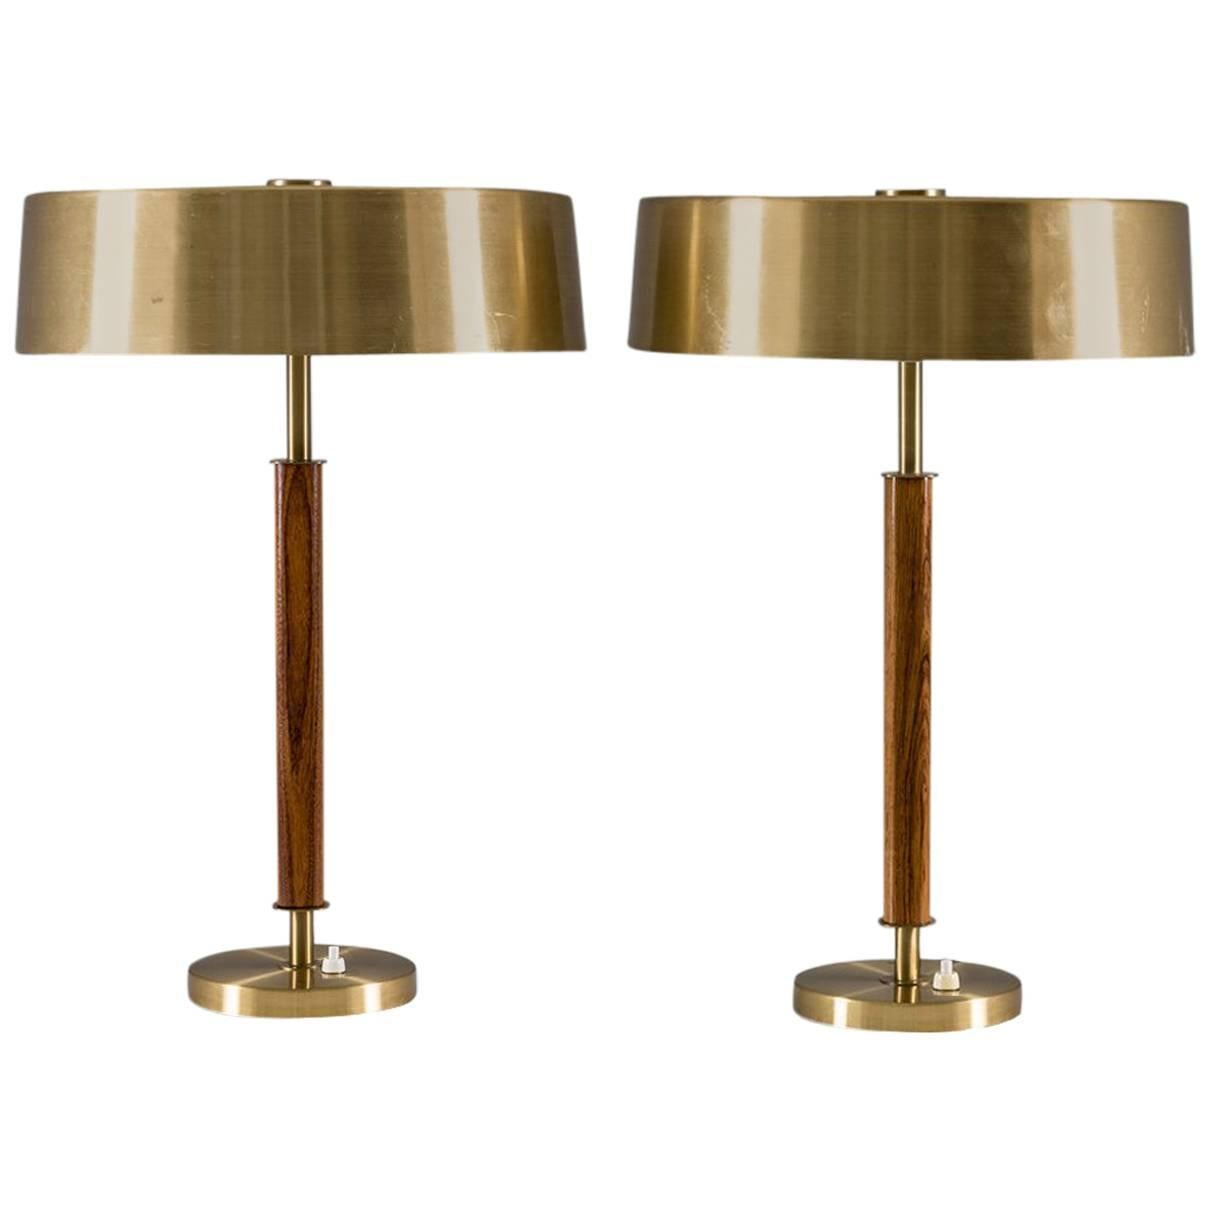 Swedish Midcentury Table Lamps in Brass and Wood by Boréns